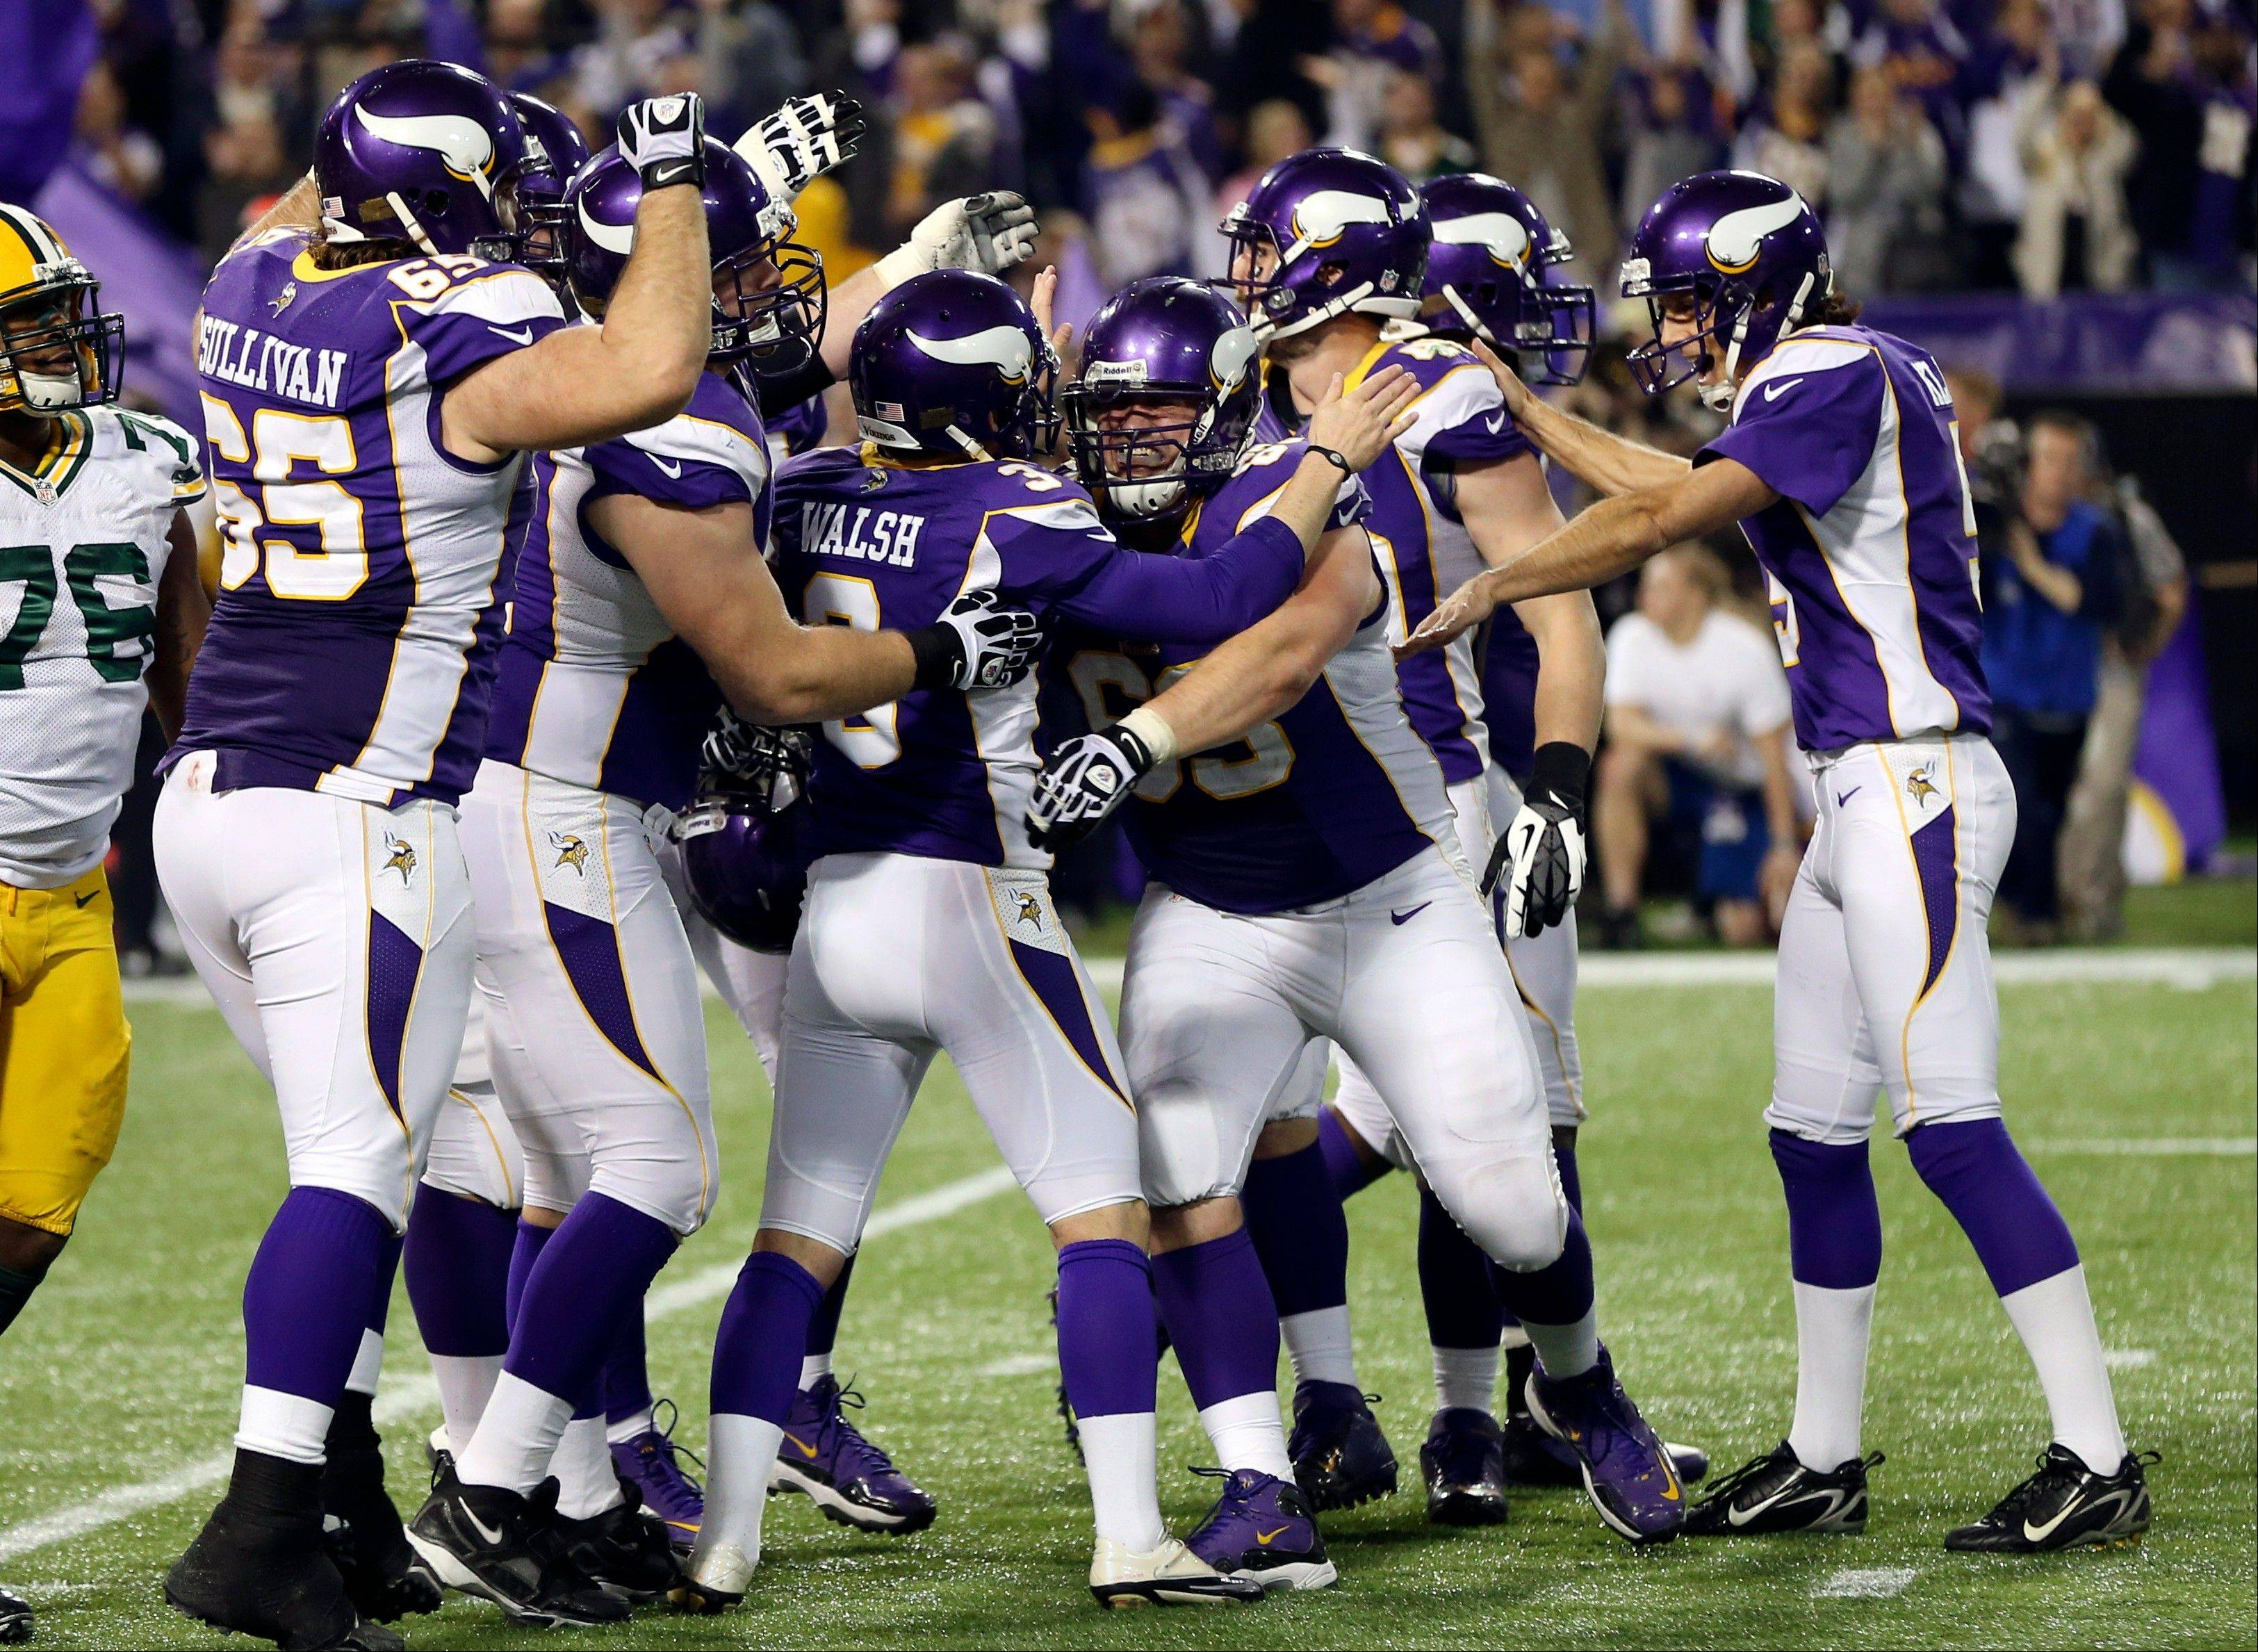 Minnesota Vikings kicker Blair Walsh, middle, celebrates with teammates after kicking a 29-yard field goal to knock the Bears out of the playoff picture. But will that be enough to determine the fate of Bears coach Lovie Smith?